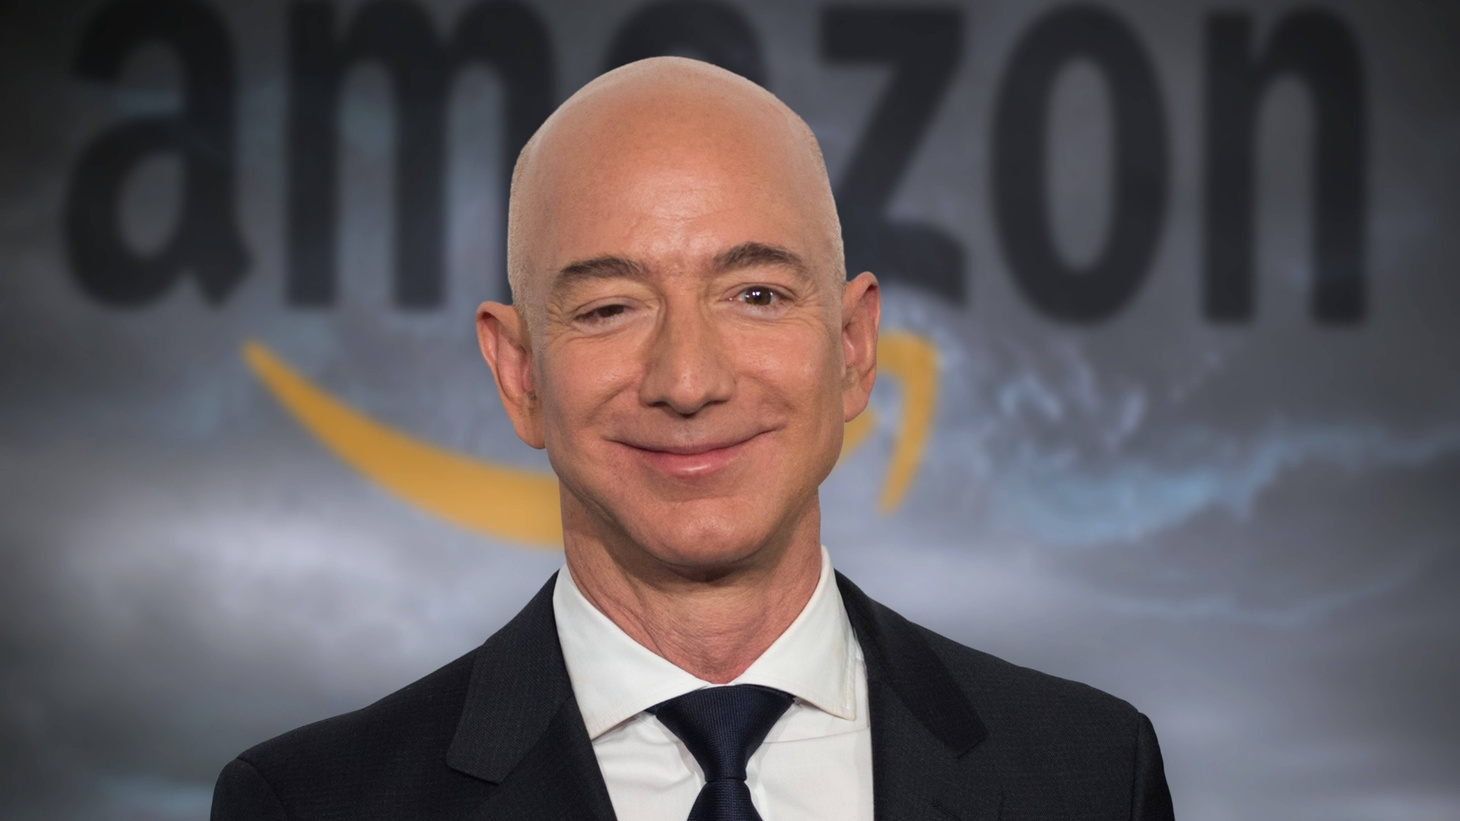 """""""He [Jeff Bezos] wanted to be a successful entrepreneur. He was selling books, not because he had a passion for reading — which he did actually — but because it was tactical, it was a beachhead for further expansion. His vision was to have a store where he could sell everything,"""" says Brad Stone, author of """"Amazon Unbound."""""""